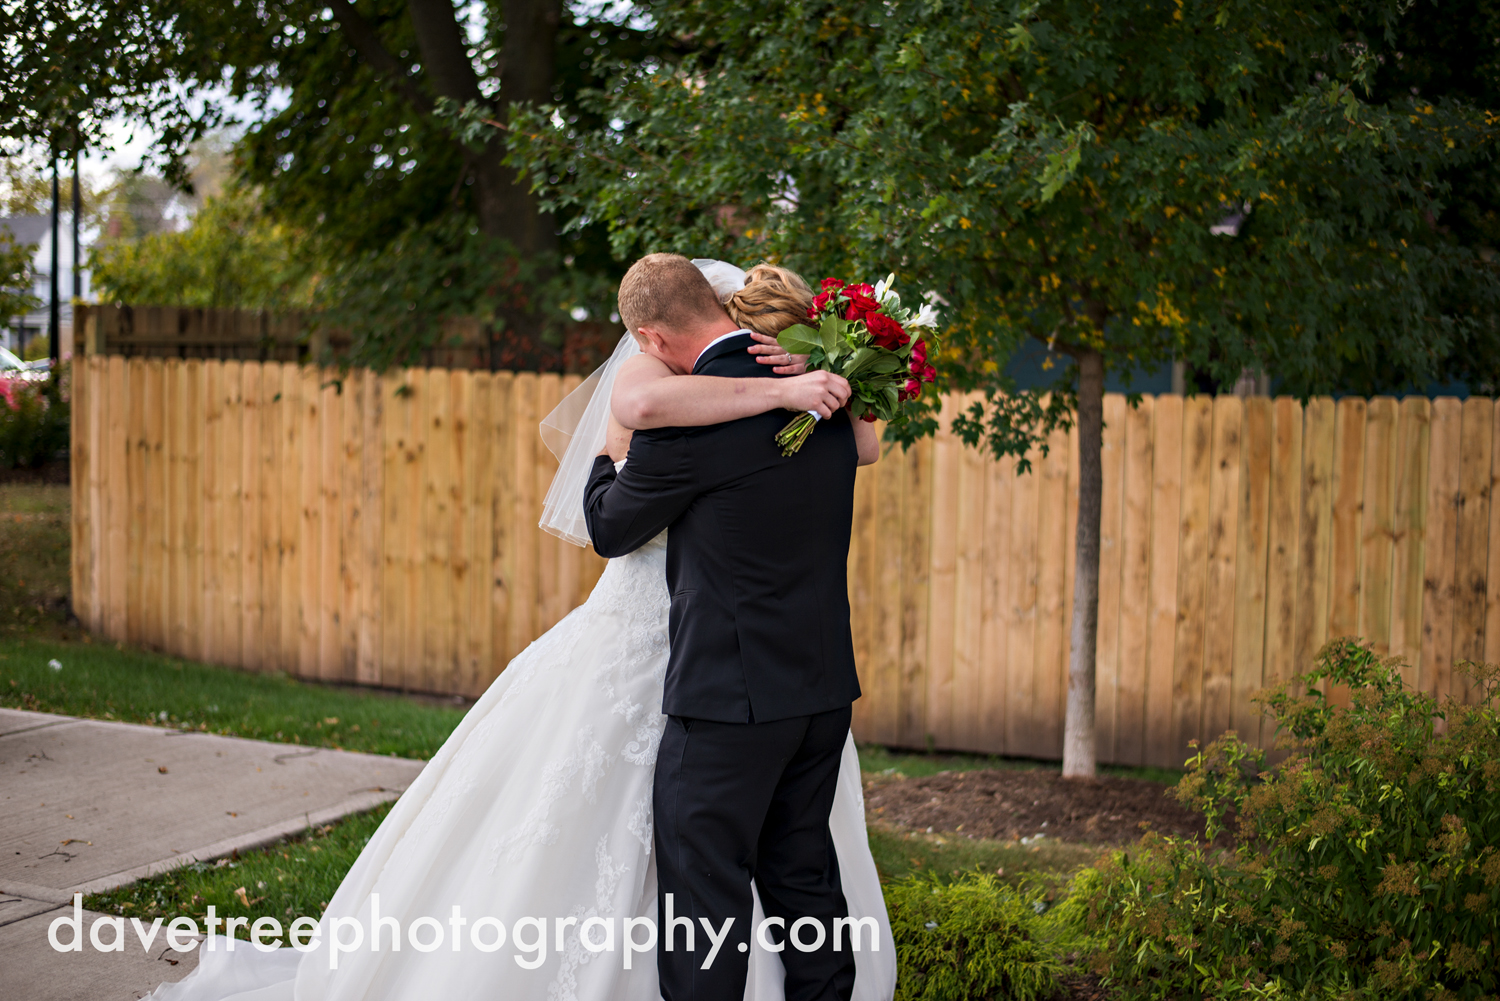 holland_wedding_photographer_84.jpg